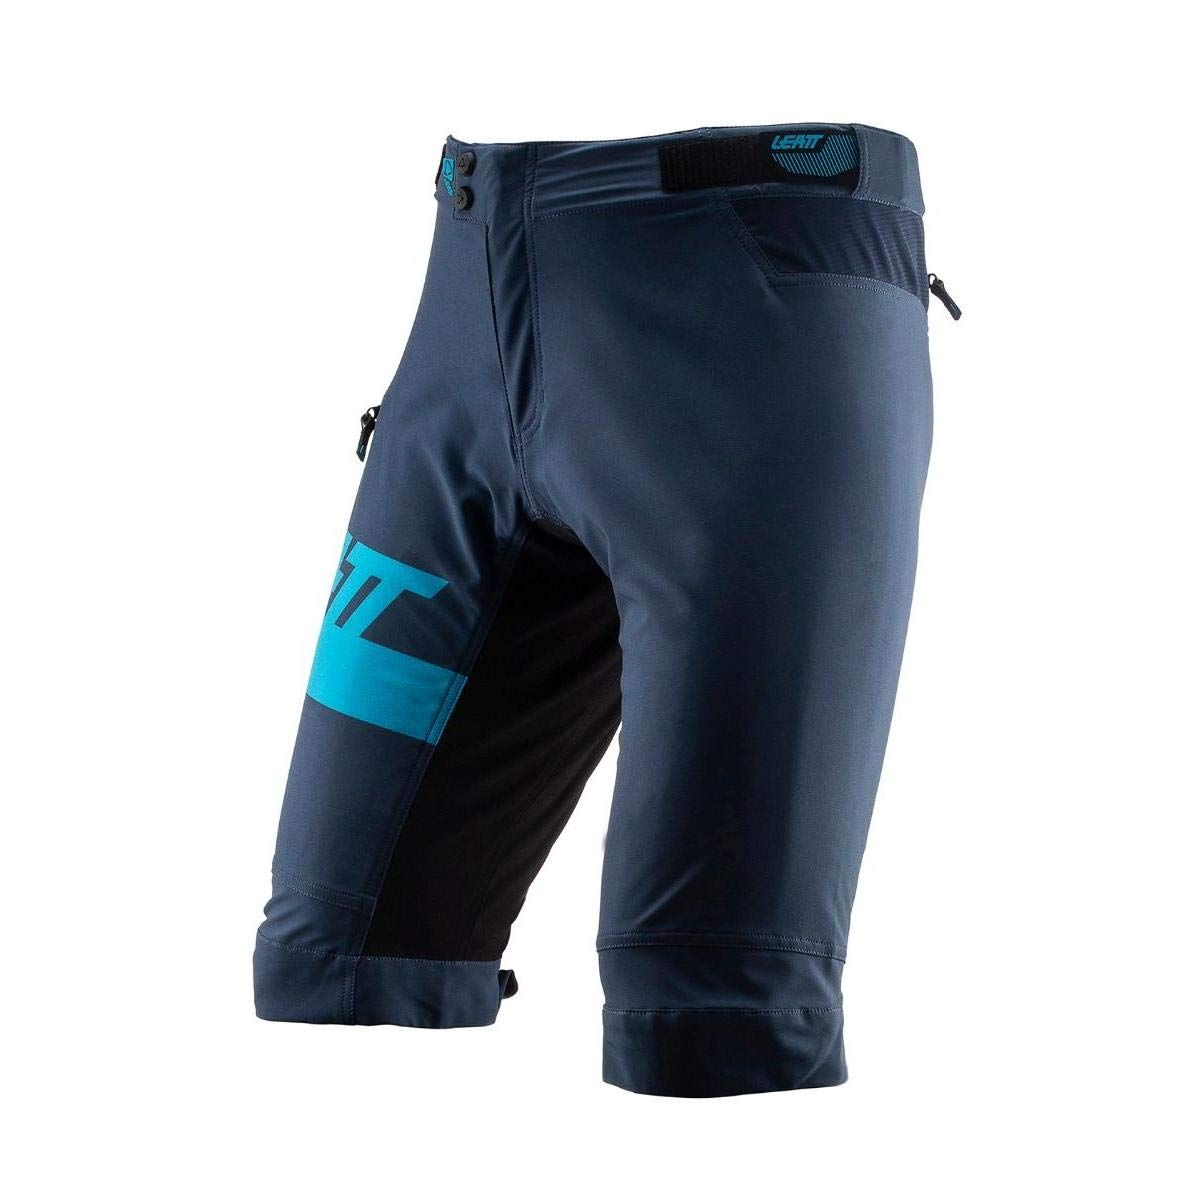 Leatt Downhill-Short DBX 3.0 Blau Gr. M